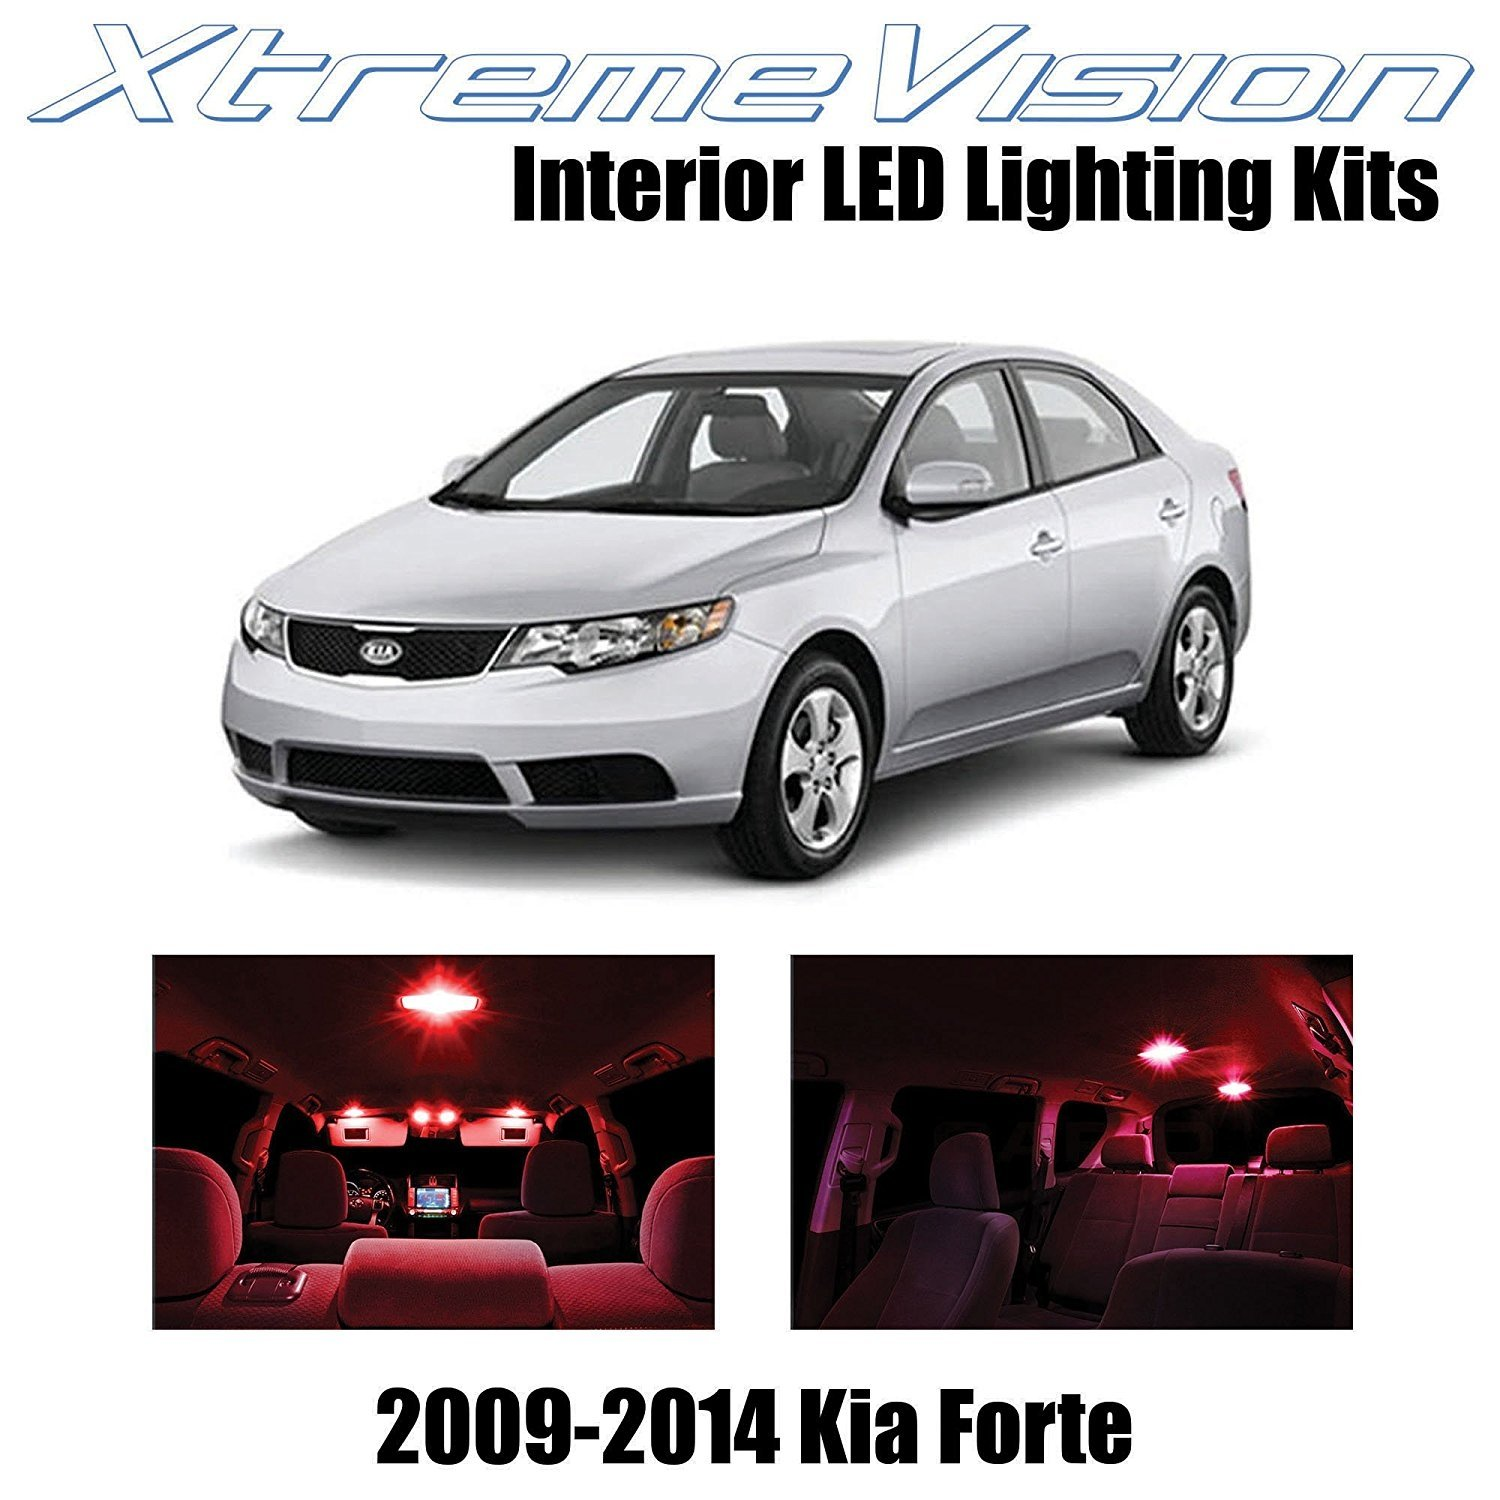 XtremeVision LED for Kia Forte 2009-2014 (8 Pieces) Red Premium Interior LED Kit Package + Installation Tool Tool